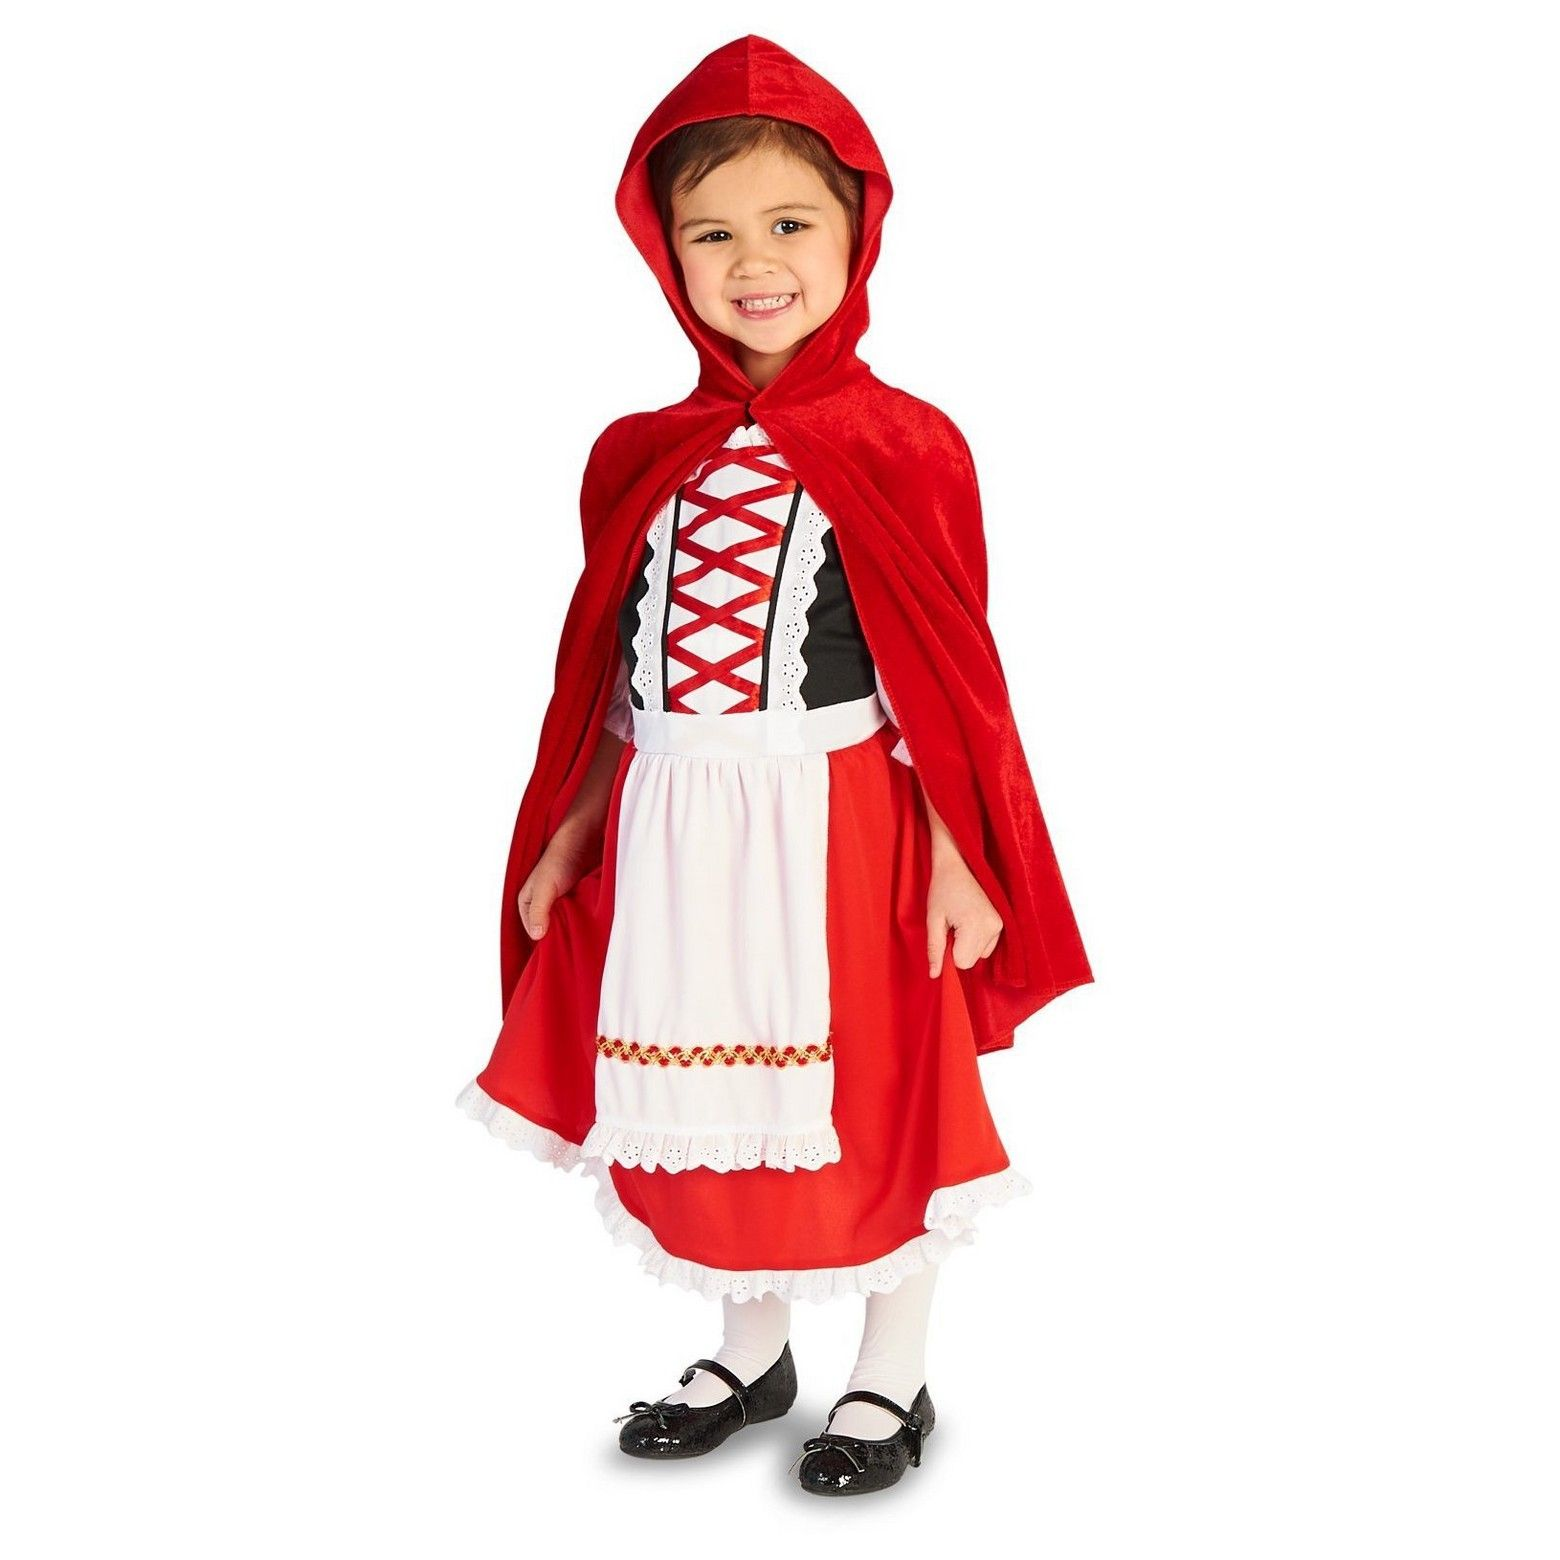 Halloween Red Riding Hood Classic Toddler Costume 2-4T Toddler Girlu0027s Size 2T-4T Multi-Colored  sc 1 st  Pinterest & Halloween Red Riding Hood Classic Toddler Costume 2-4T Toddler ...